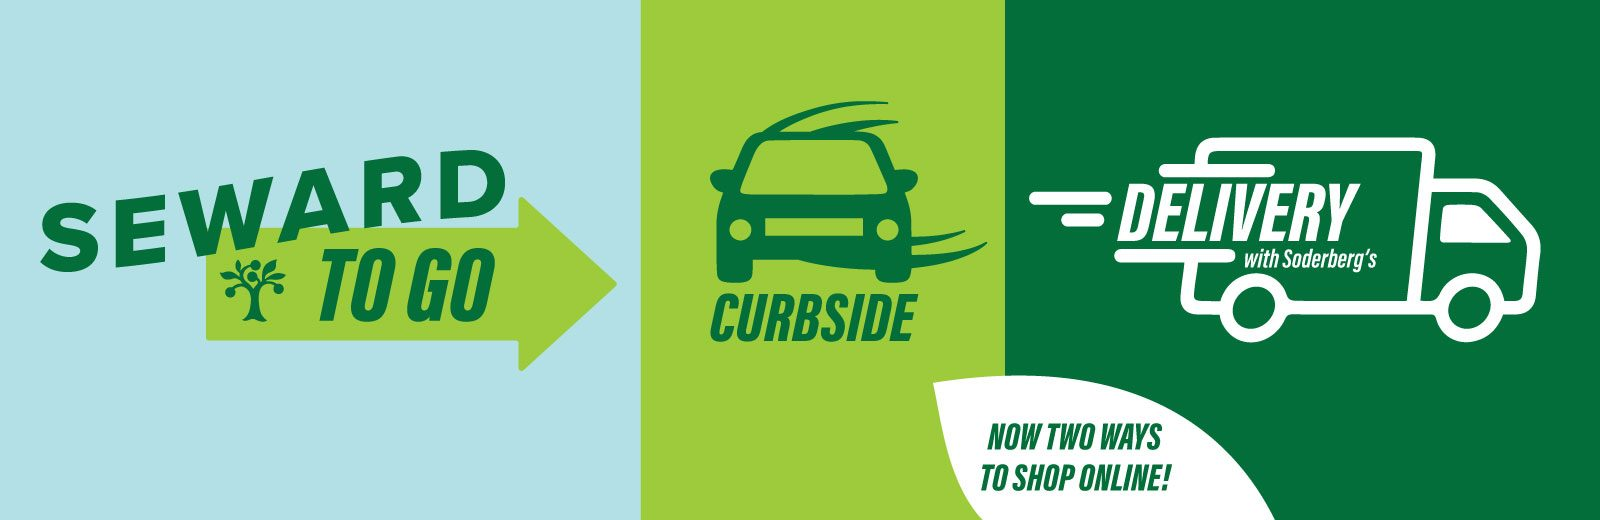 Seward To Go - Shop Curbside or Delivery